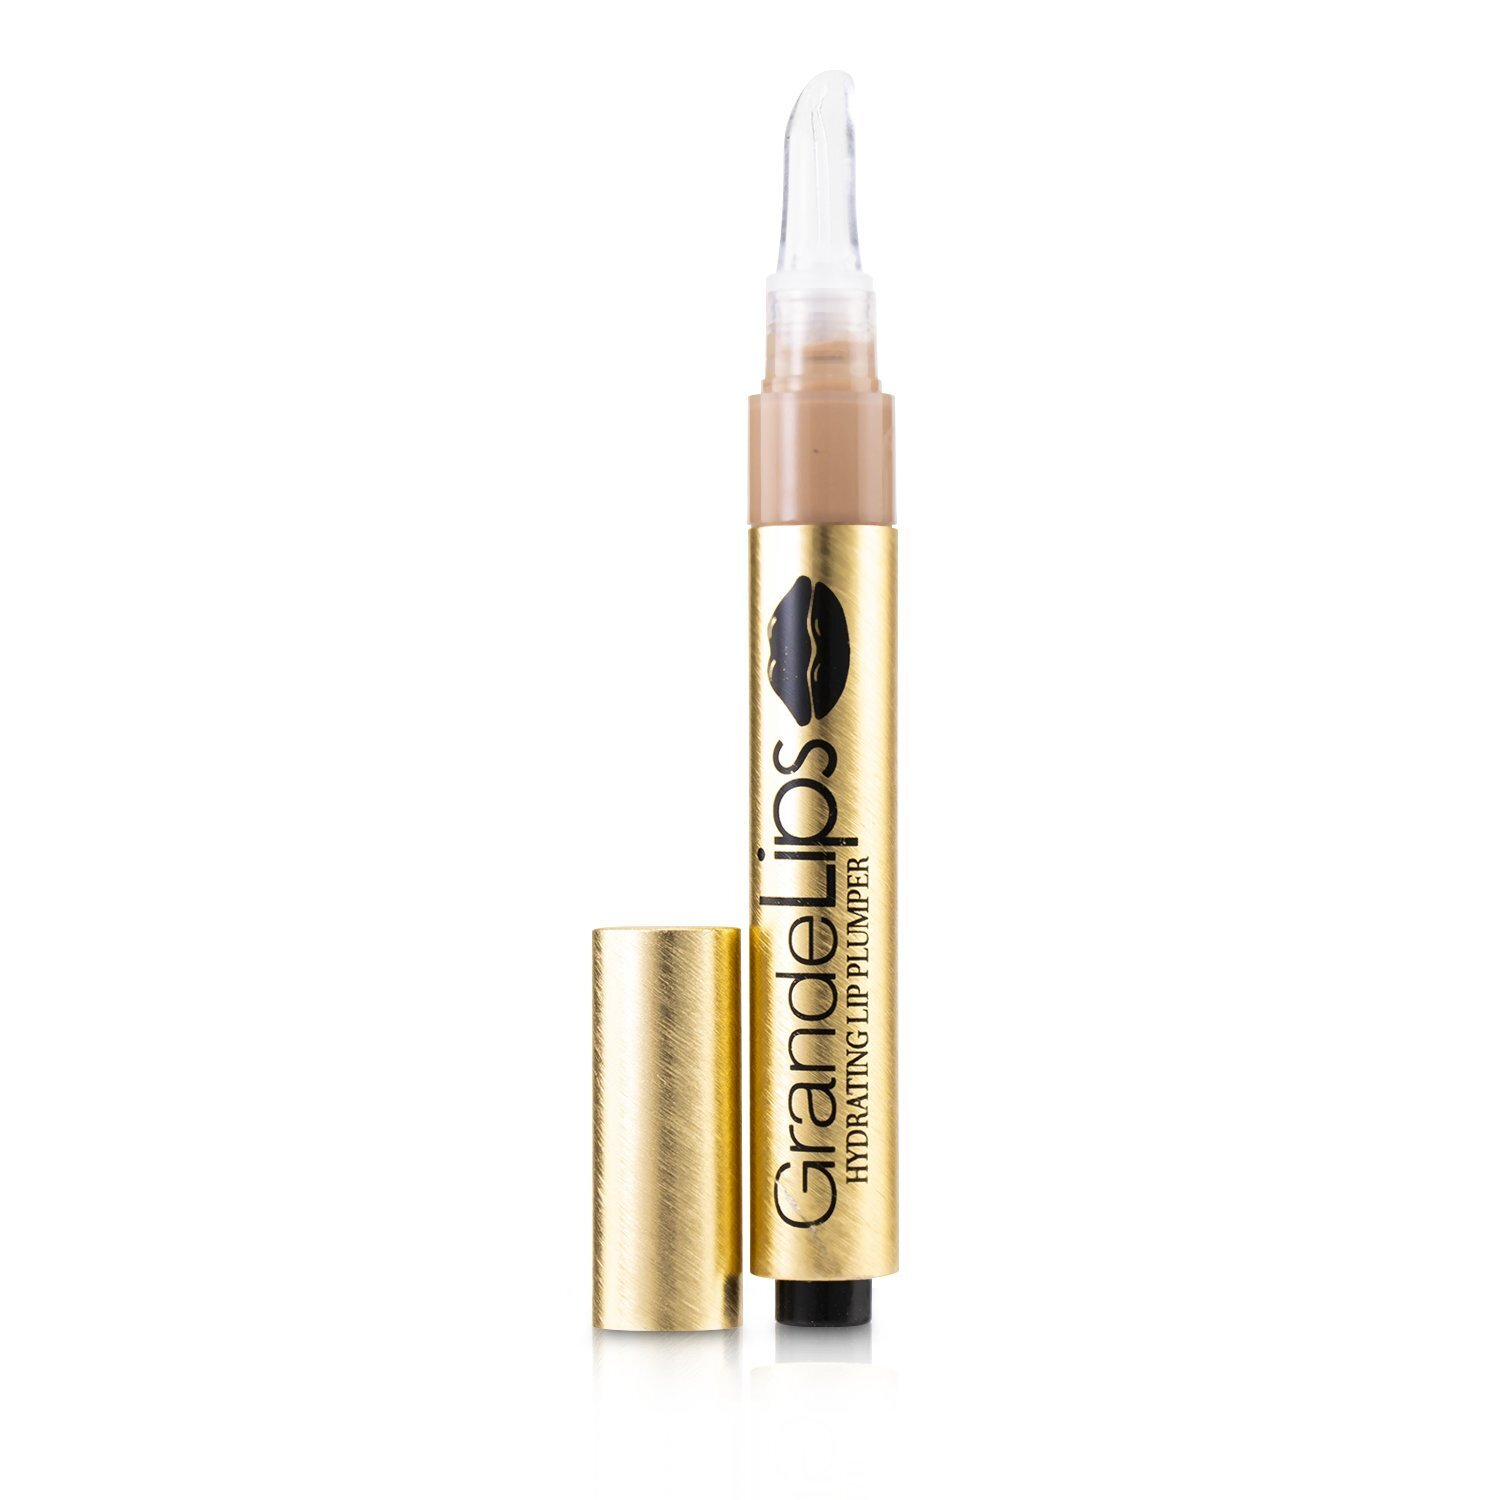 GrandeLIPS Hydrating Lip Plumper - Gloss - Barely There (light pale nude)